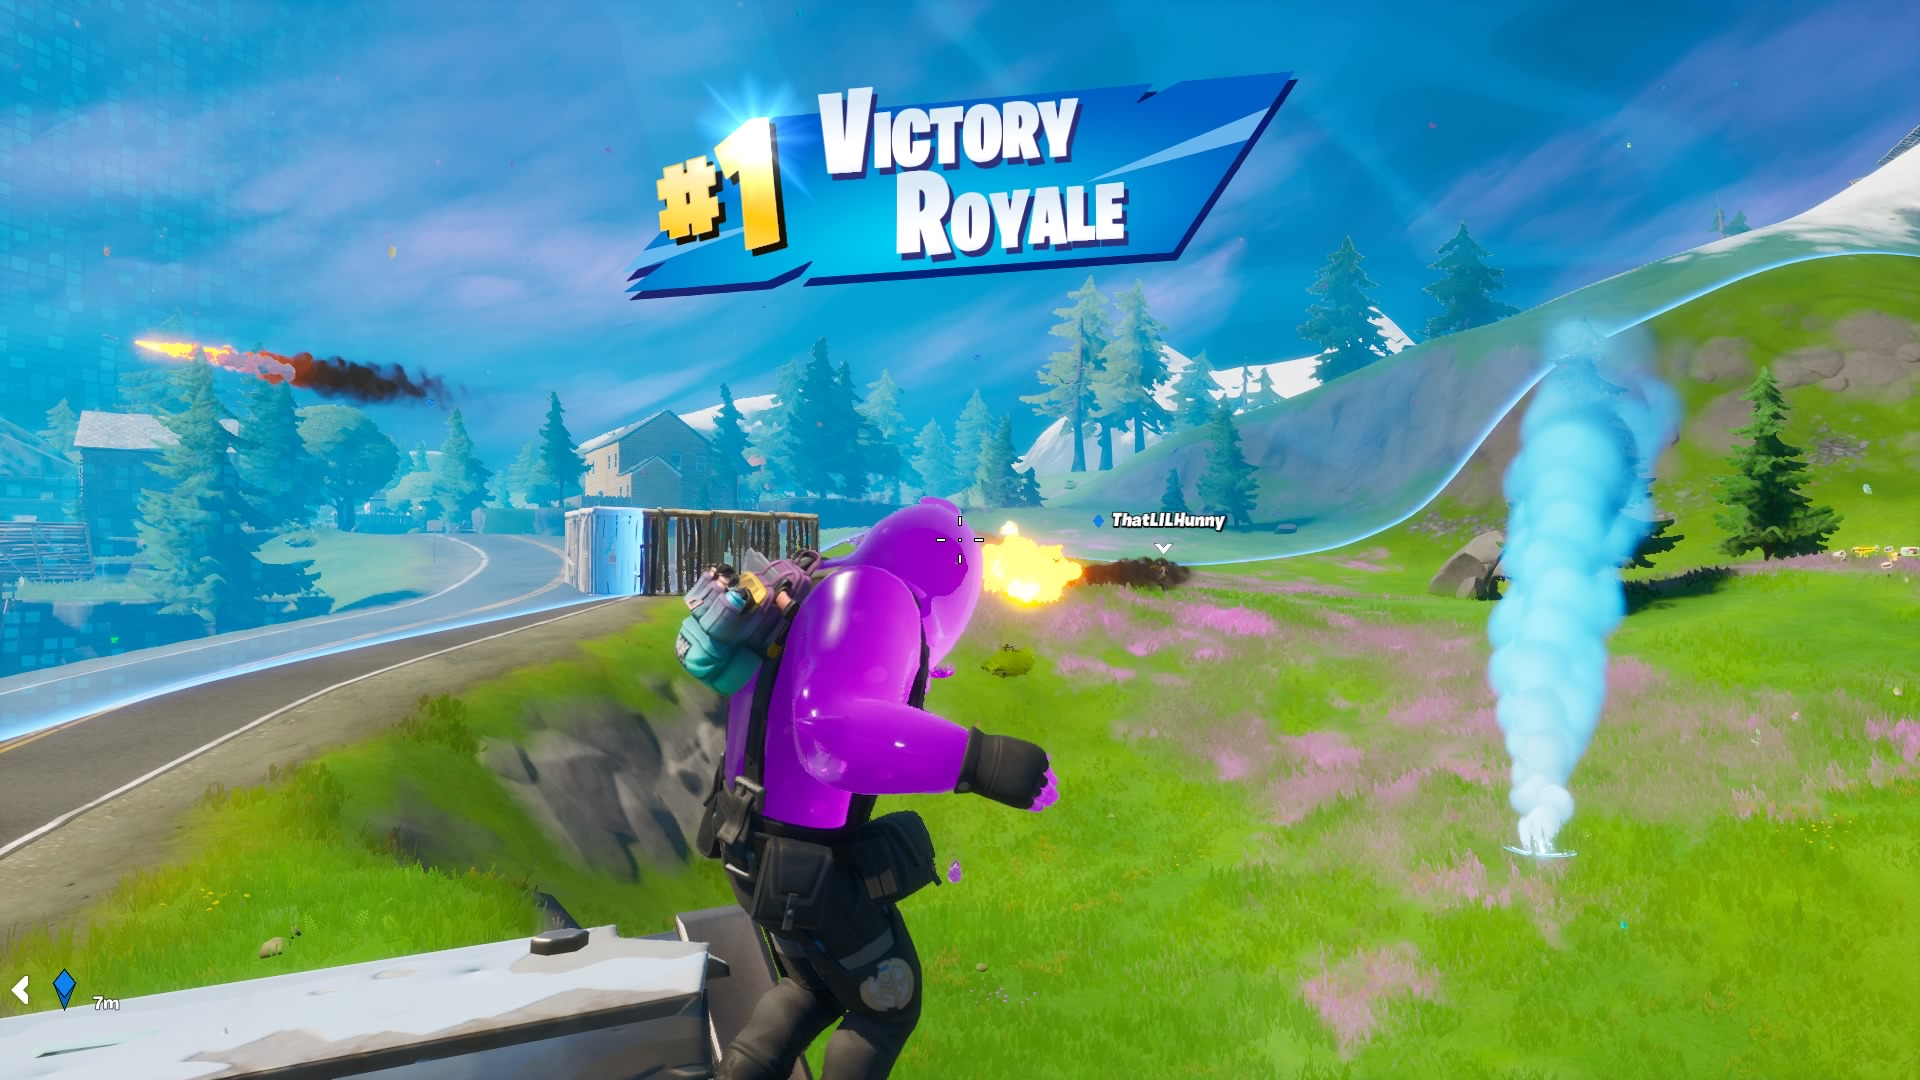 Download Fortnite Battle Royale Victory Wallpaper 71263 1920x1080 Px High Definition Wallpaper